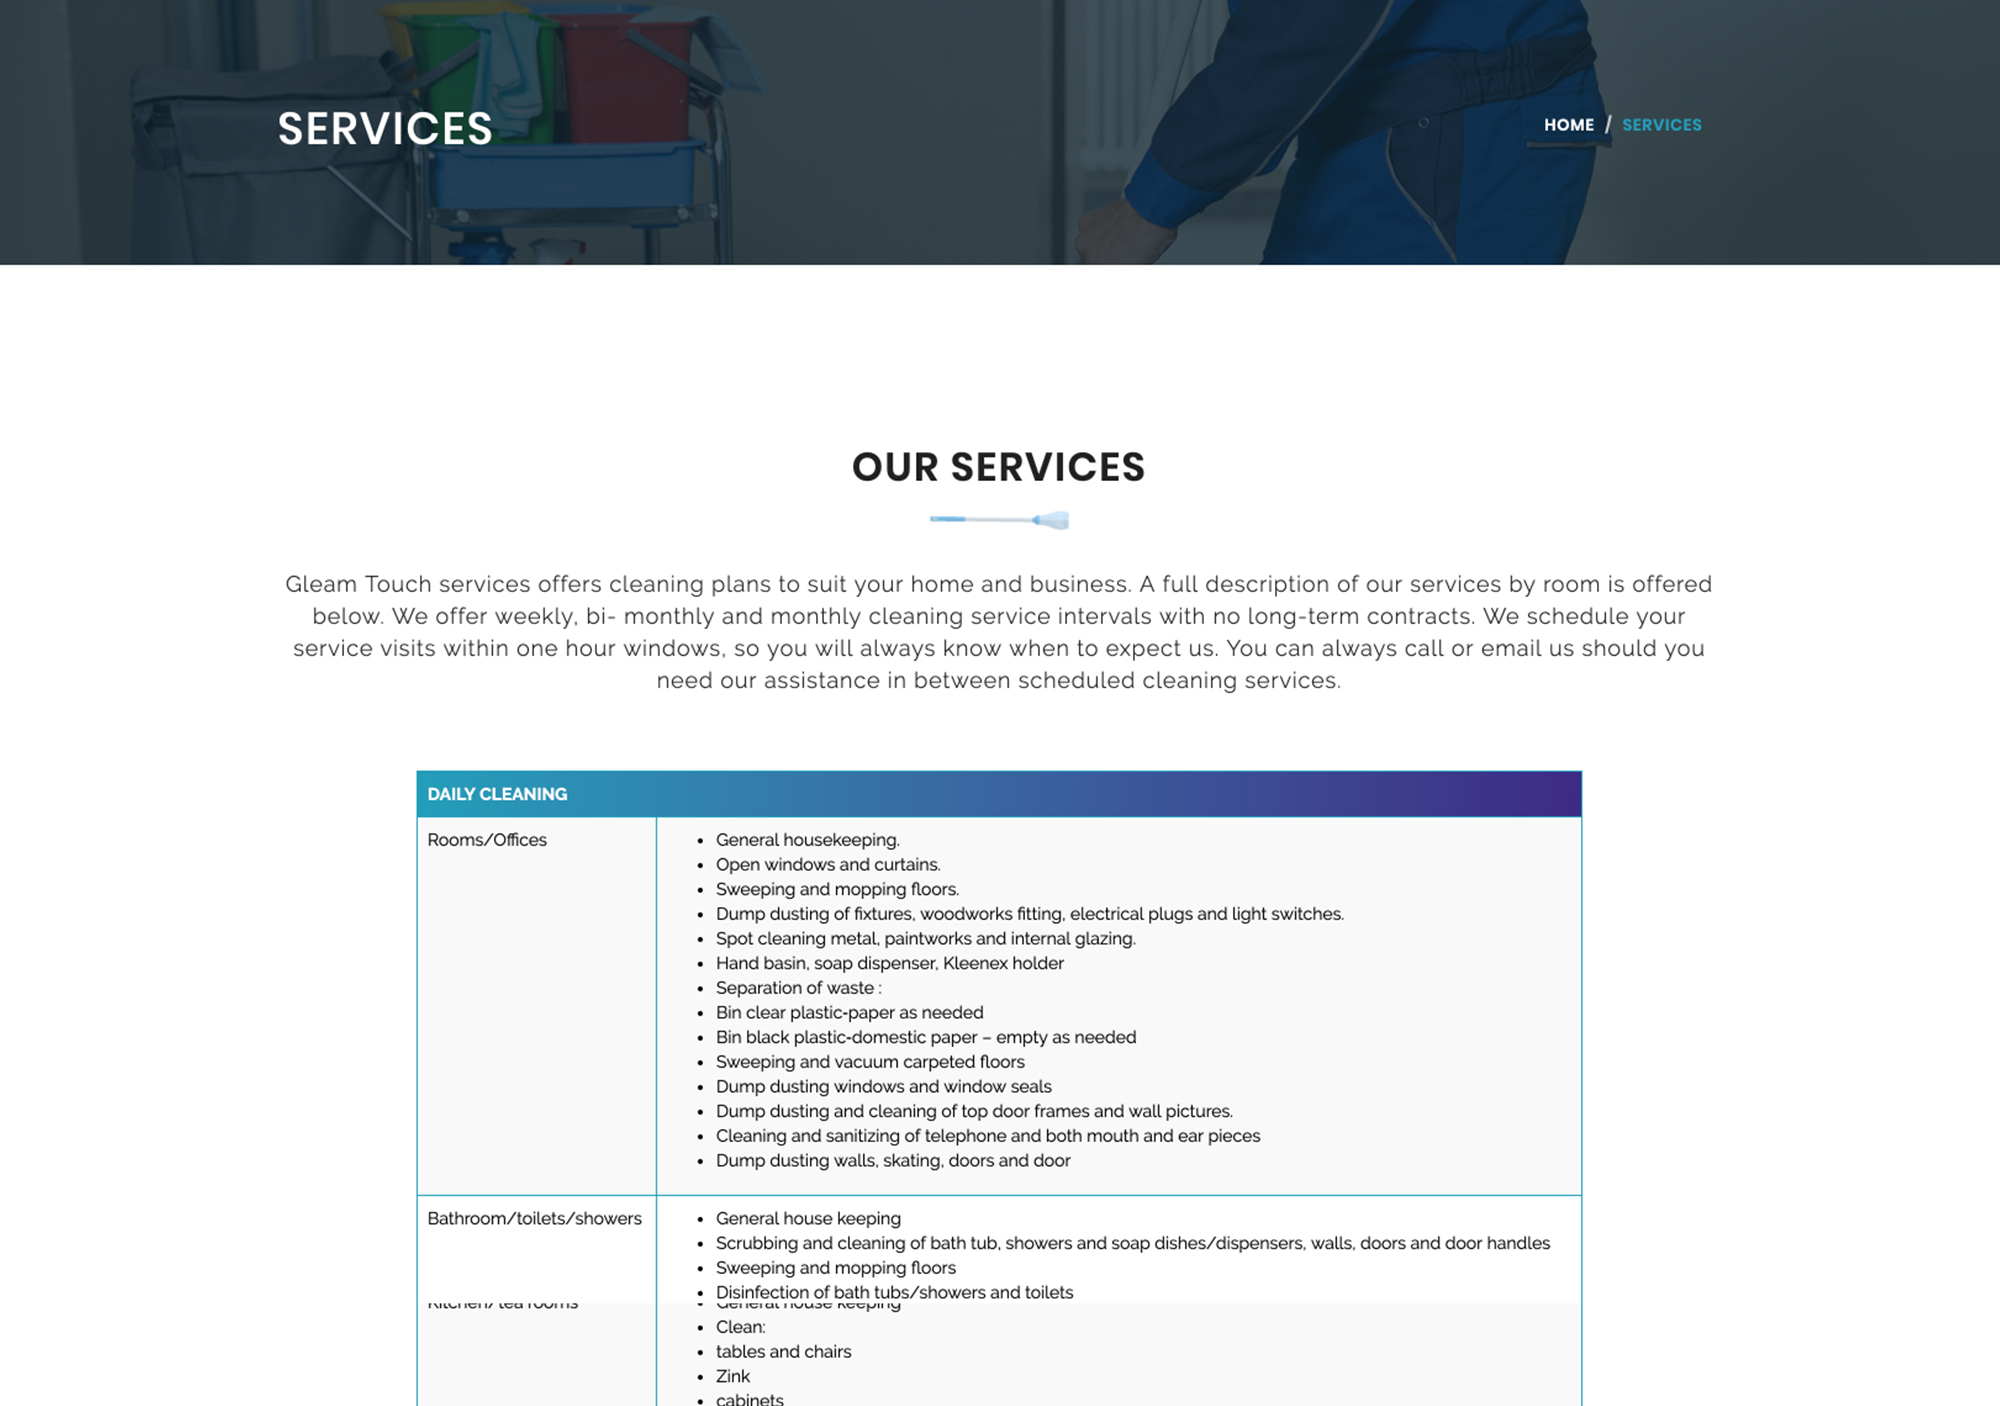 Gleam Touch Services - Anchora Technologies